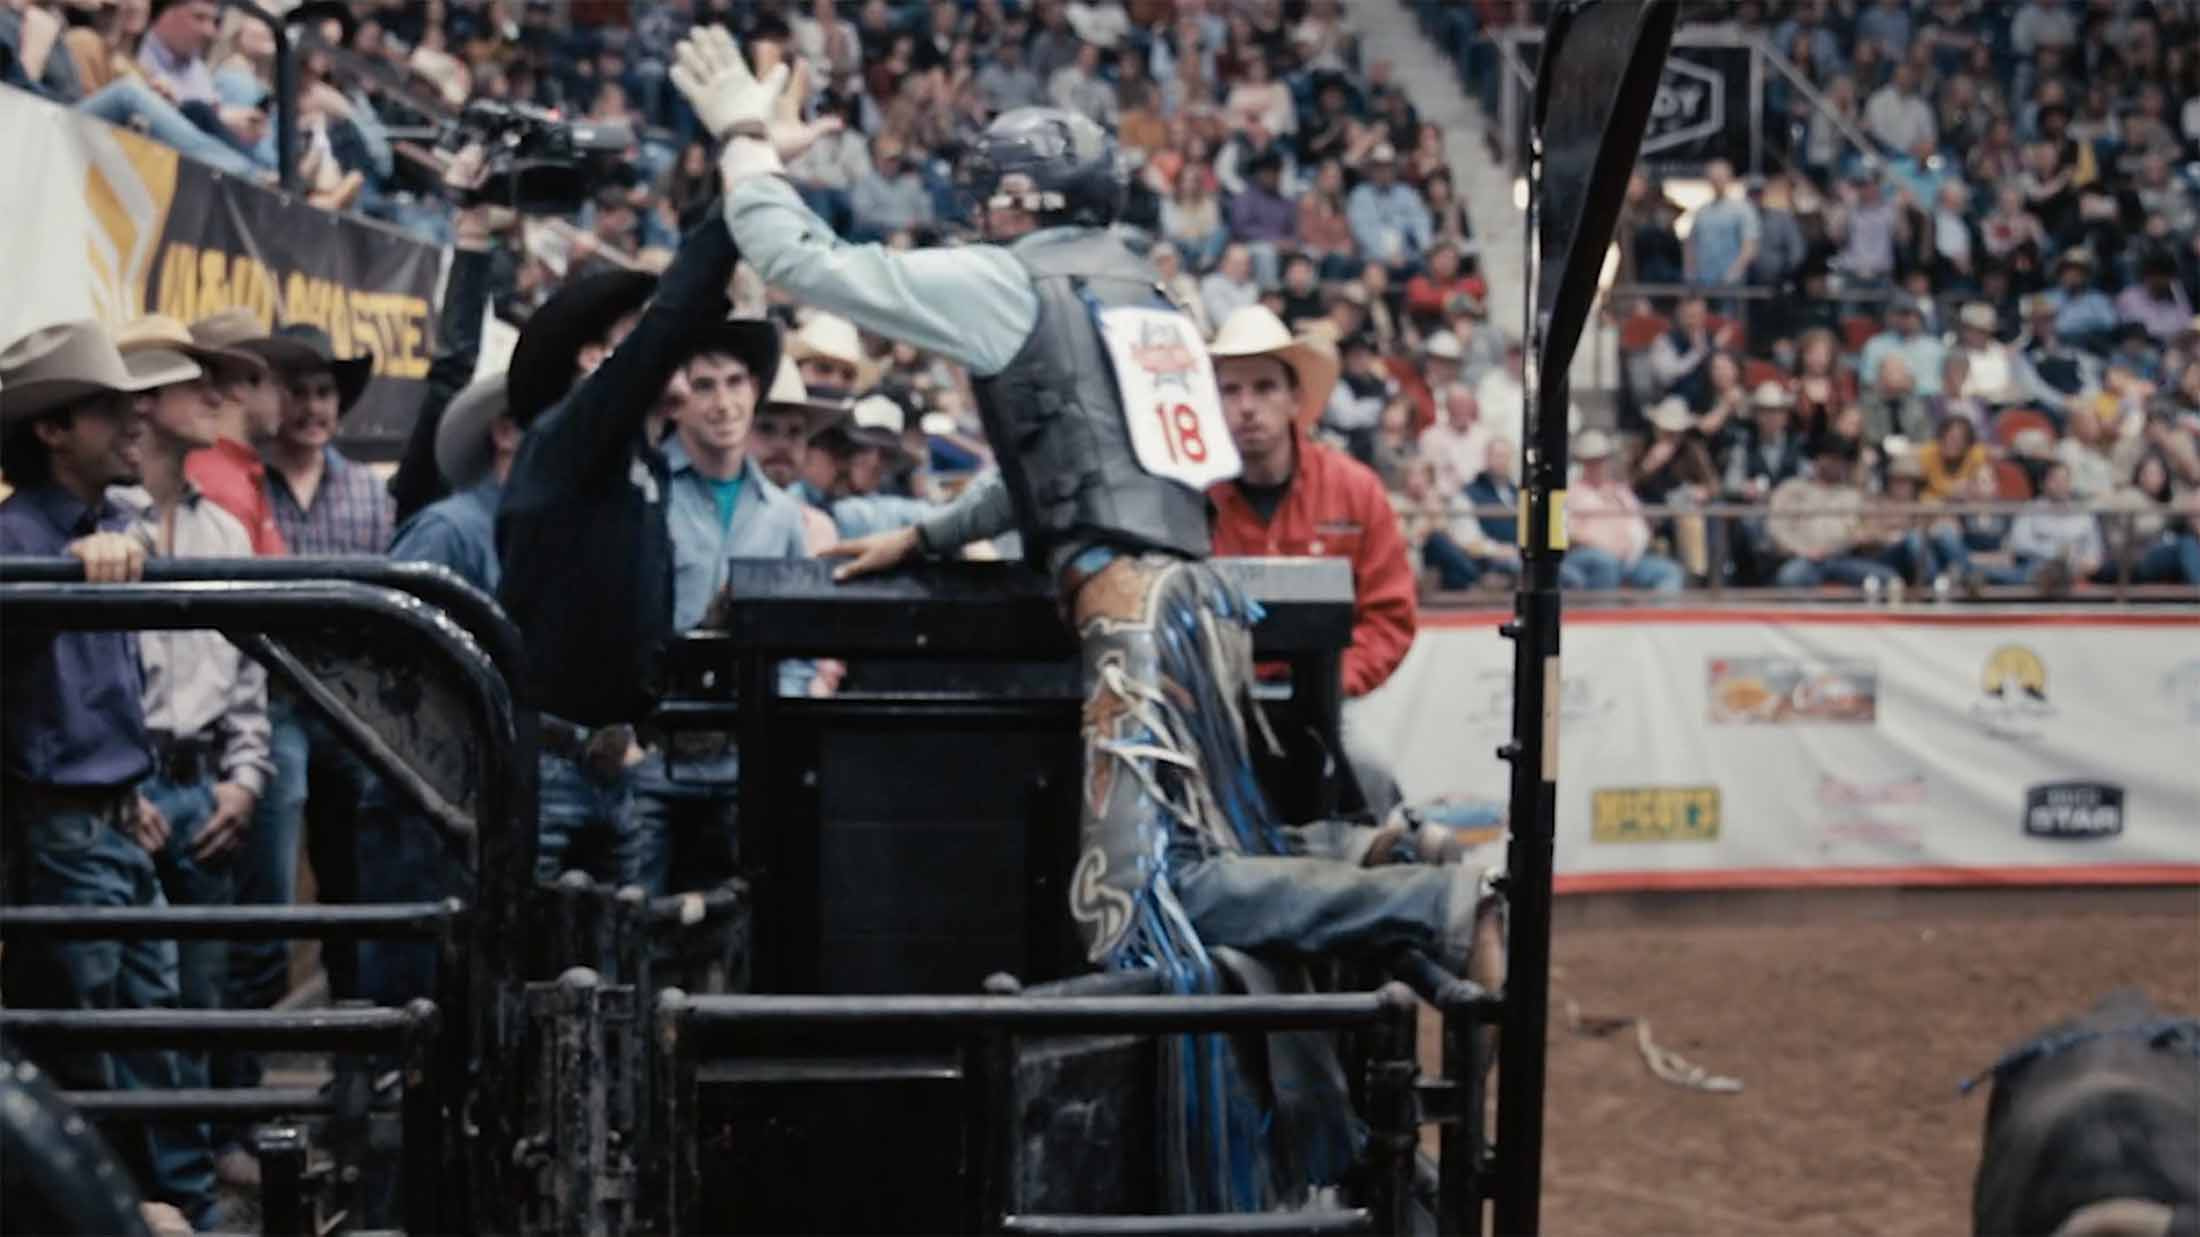 CINCH bullrider Chase Daugherty celebrates after going 89 points in San Angelo, Texas